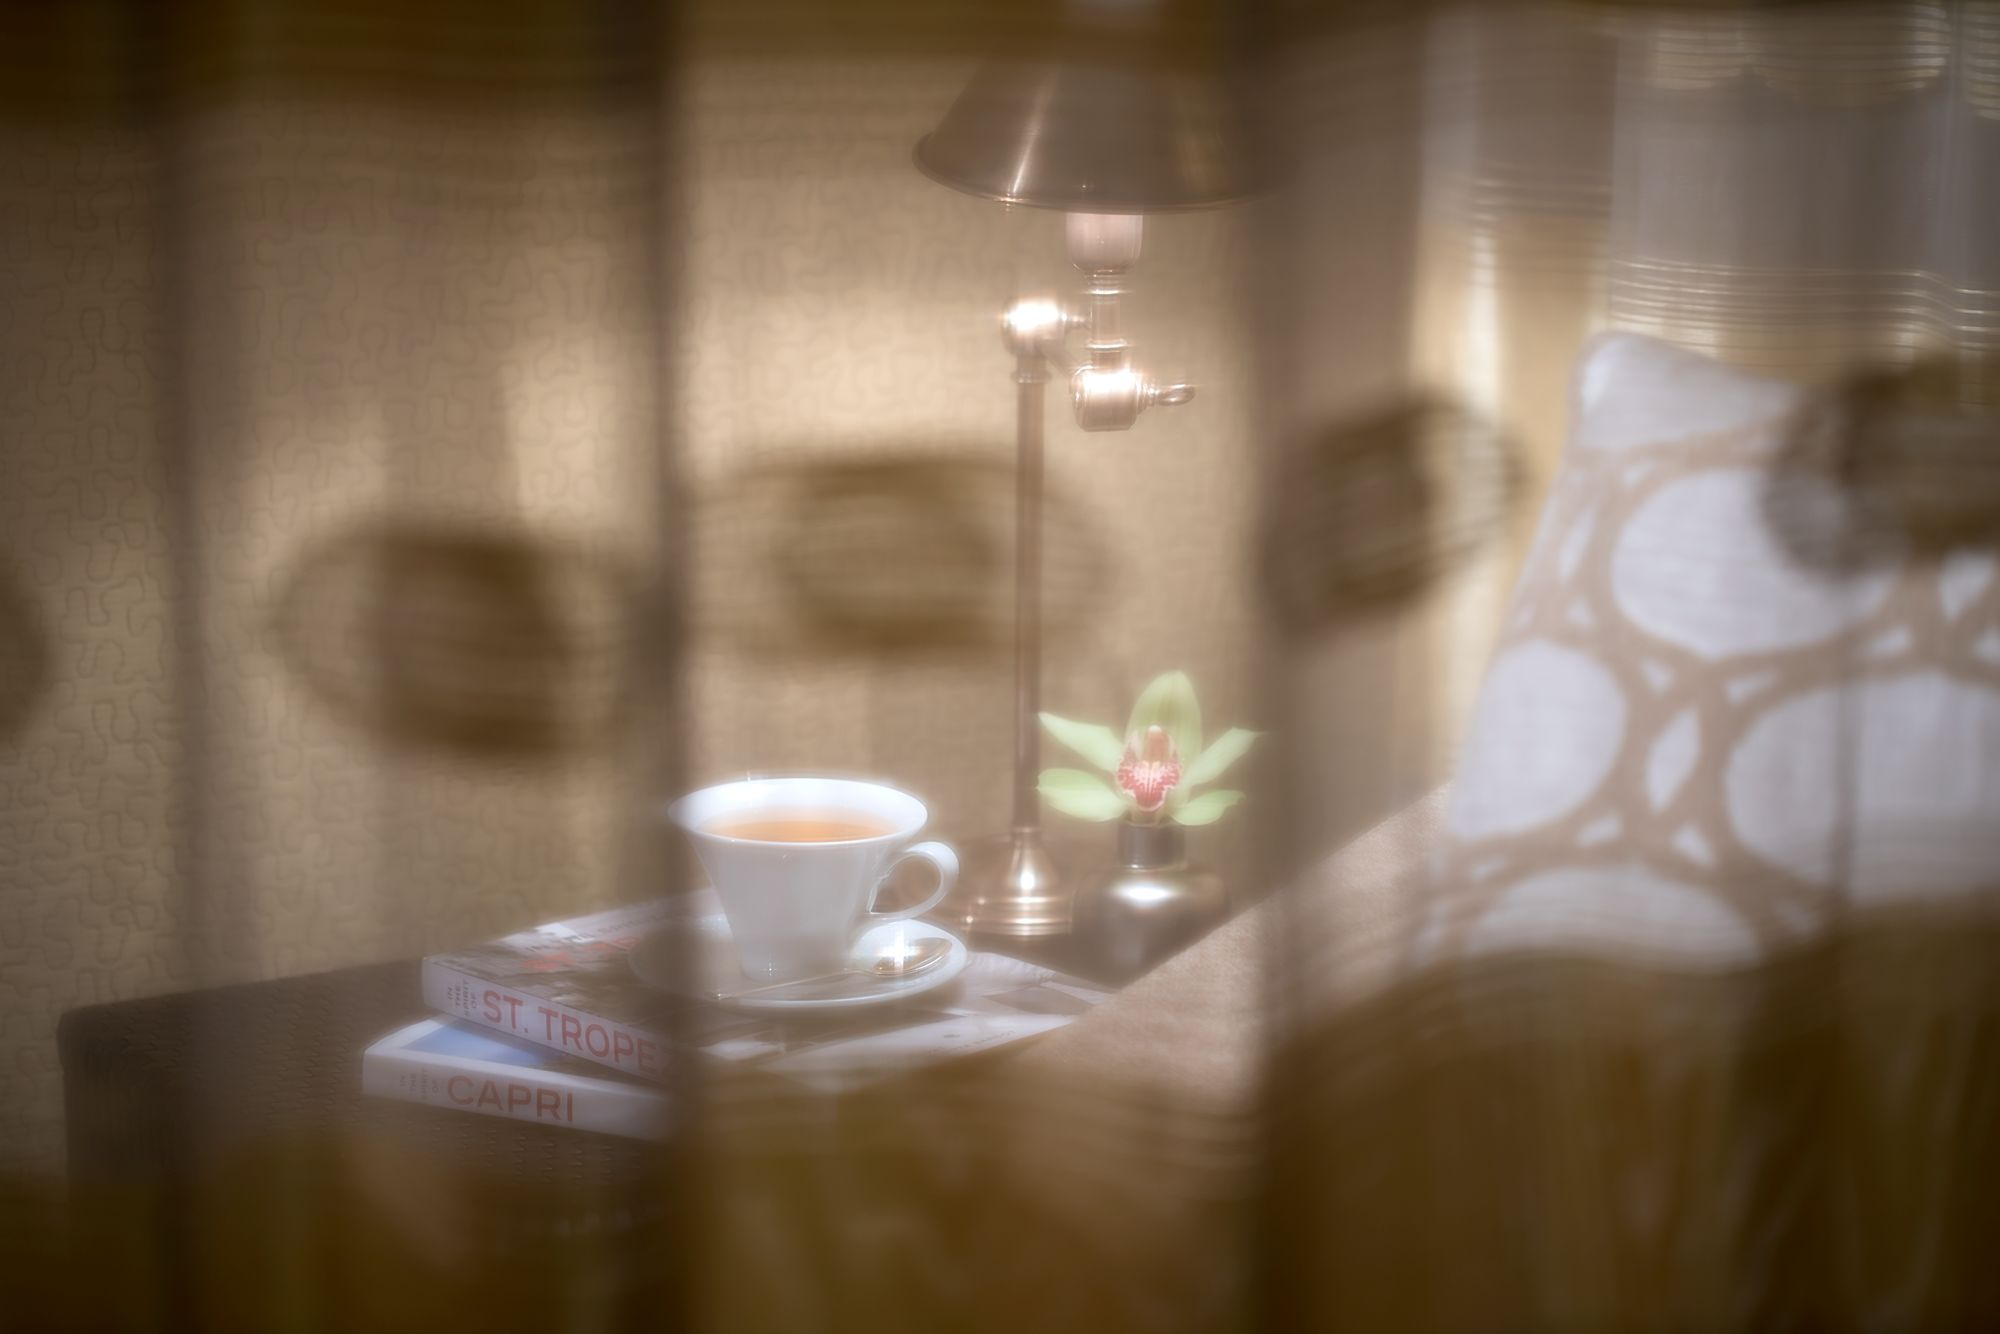 View through a sheer curtain of a cup of tea